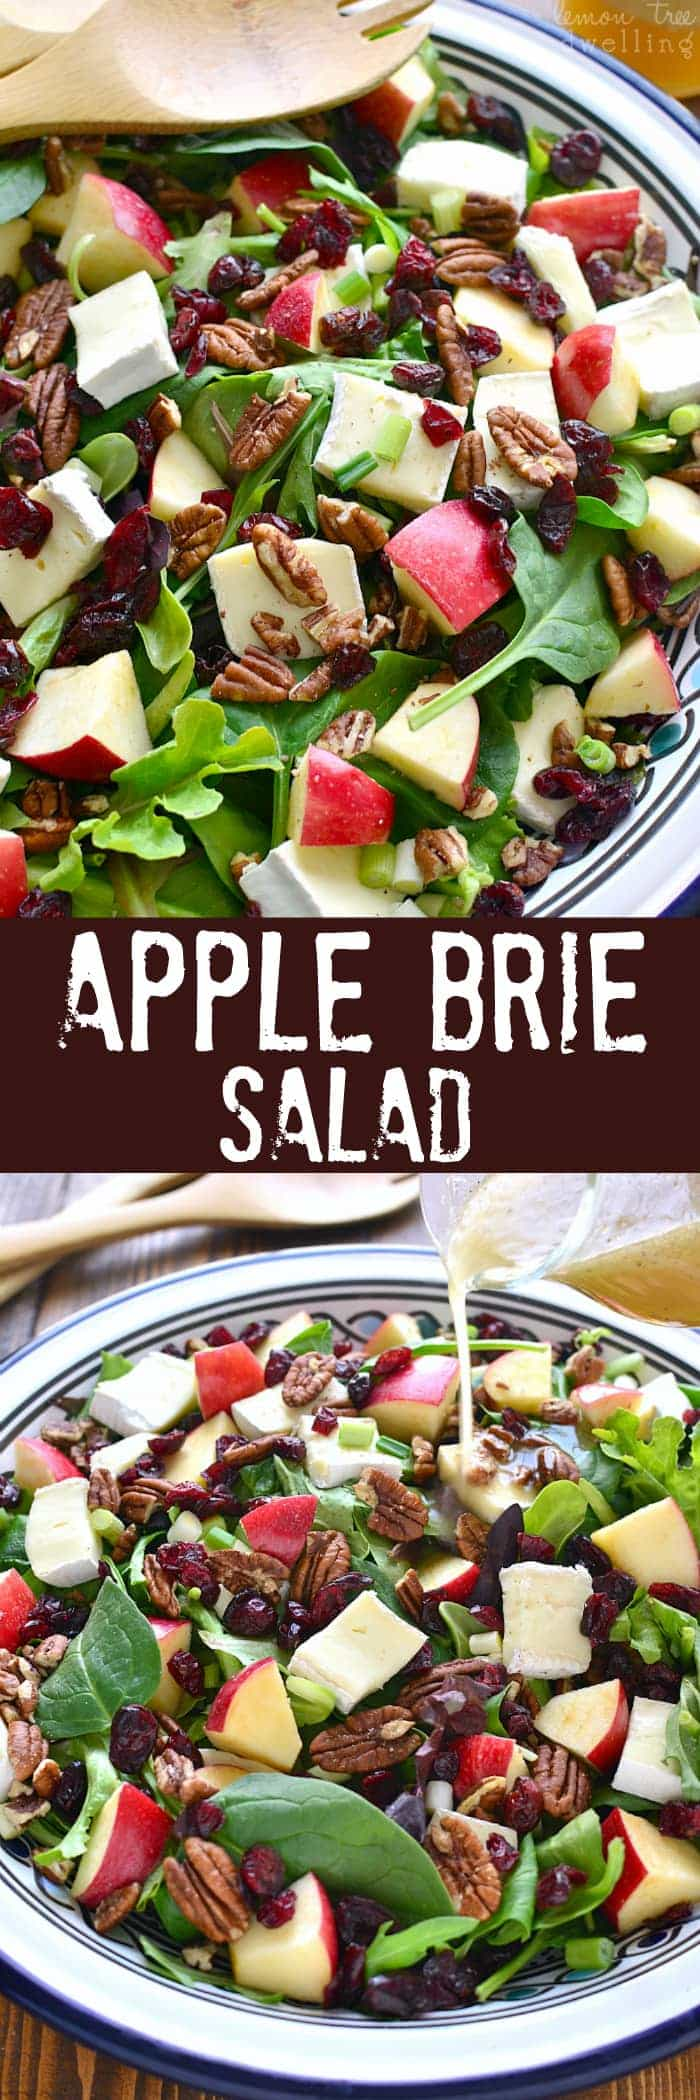 Collage image of Apple Brie Salad